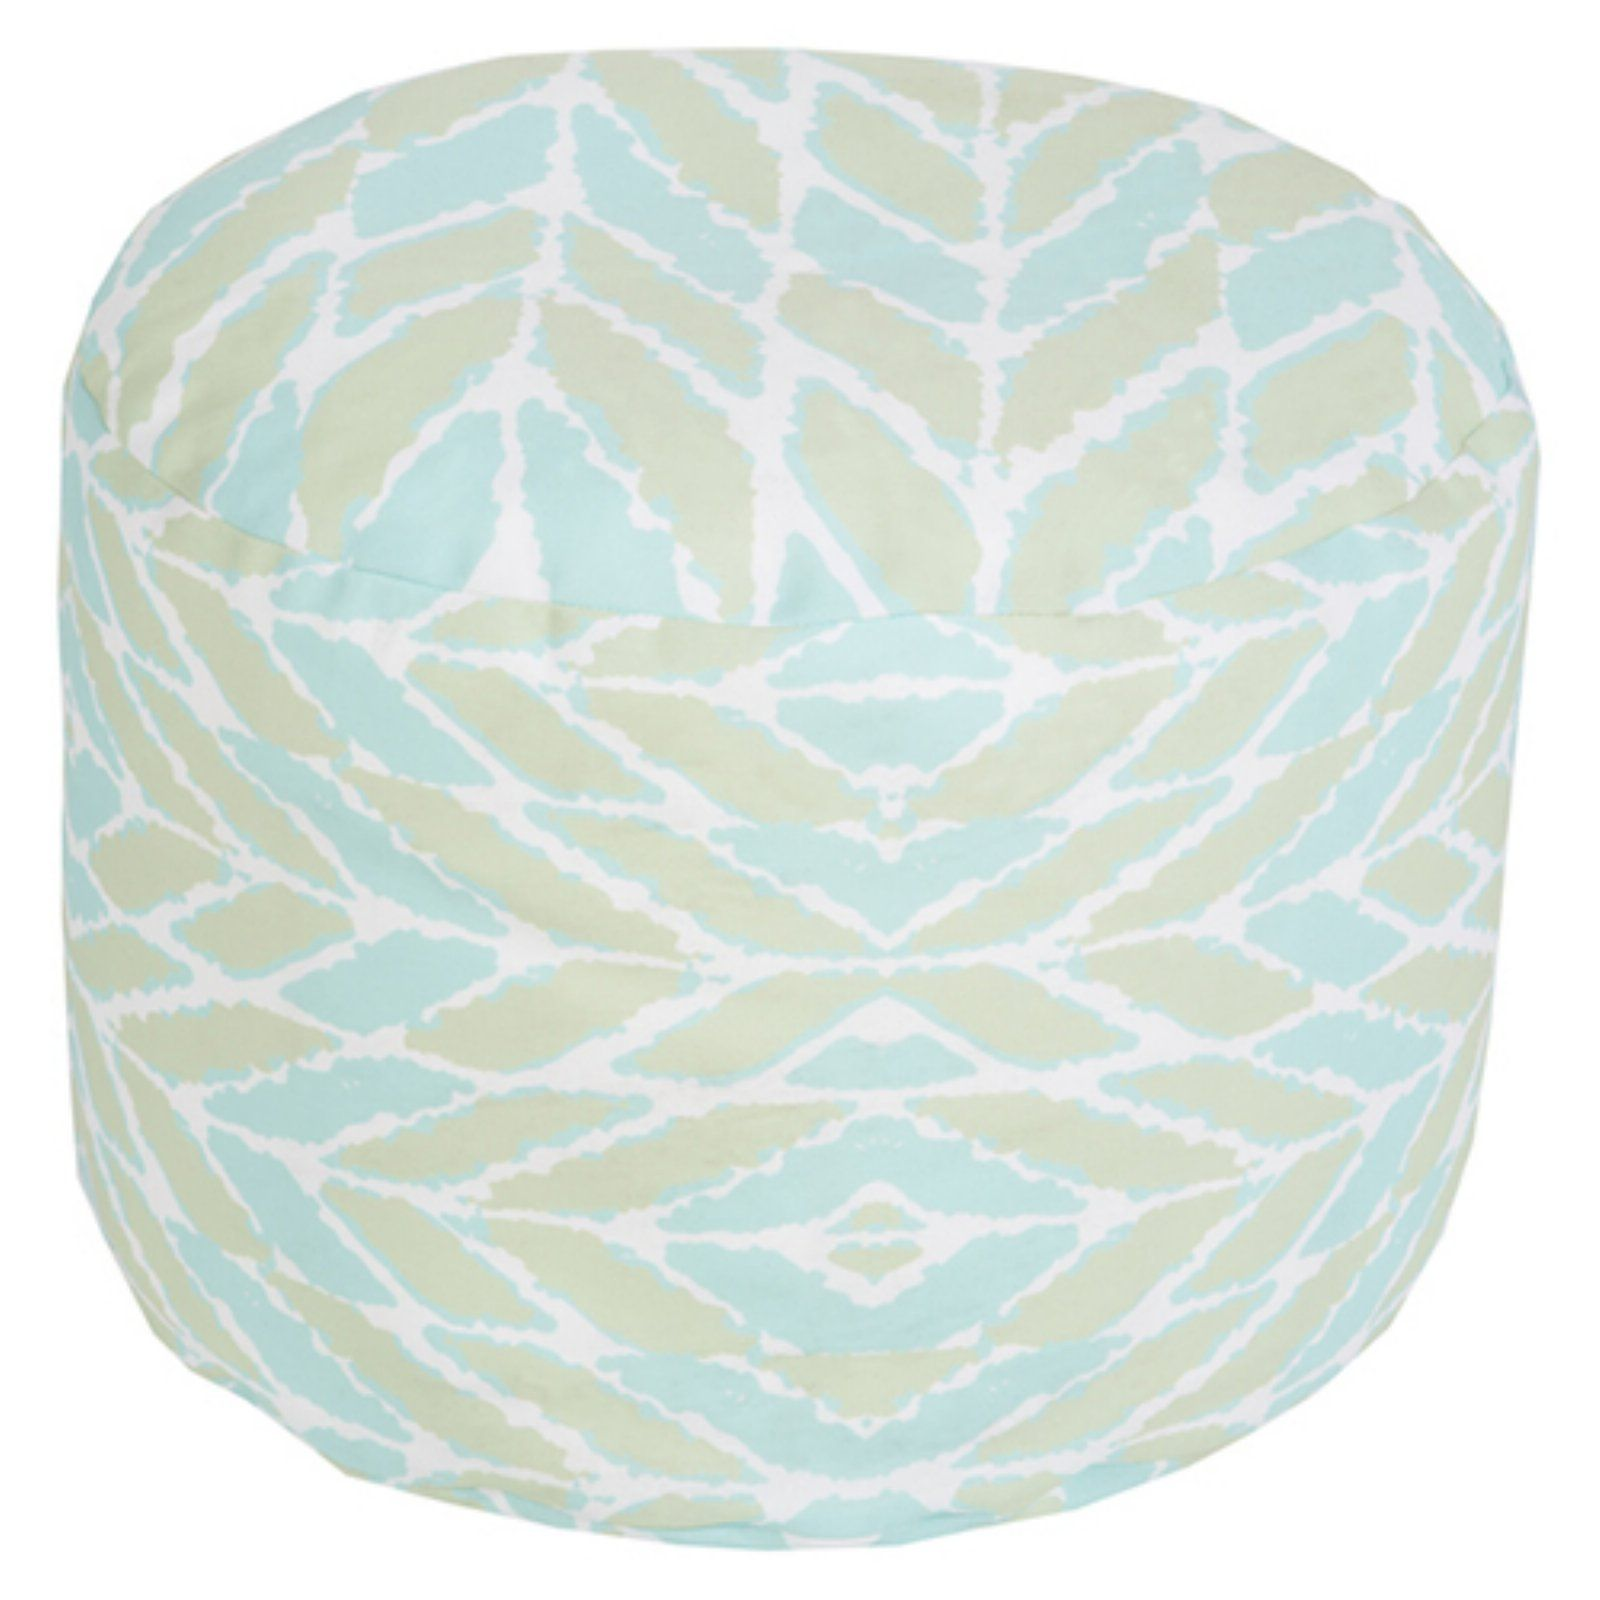 Pouf Mint Surya 20 X 20 In Outdoor Geometric Round Pouf Mint